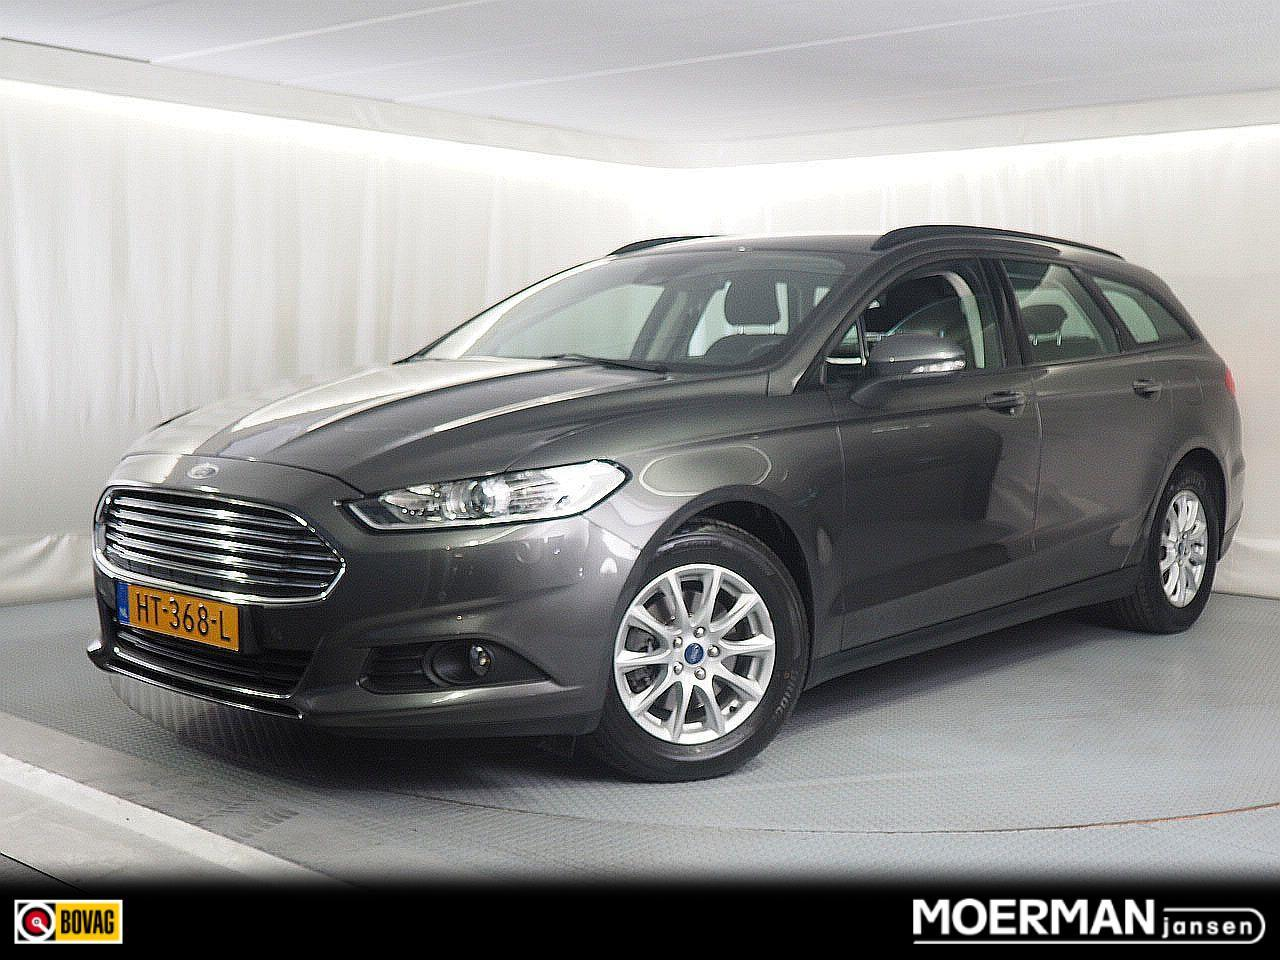 Ford Mondeo Wagon ecoboost / nl auto / voll. dealerhistorie / 77.000km